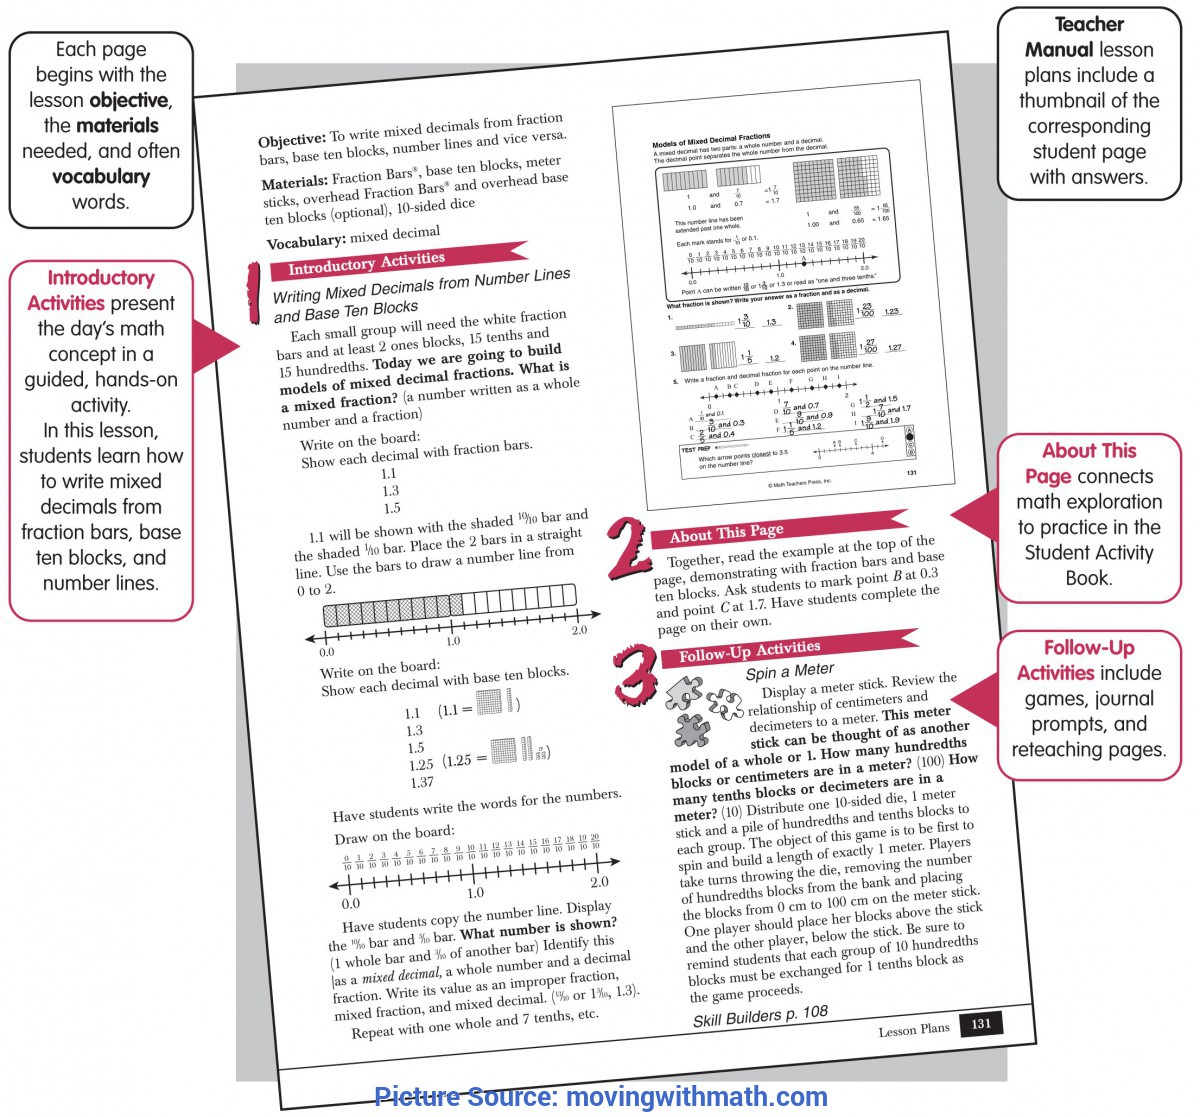 Unusual Lesson Plan In Math 3 A Foundational Lesson Plan From Part A | Moving With Math - Rt